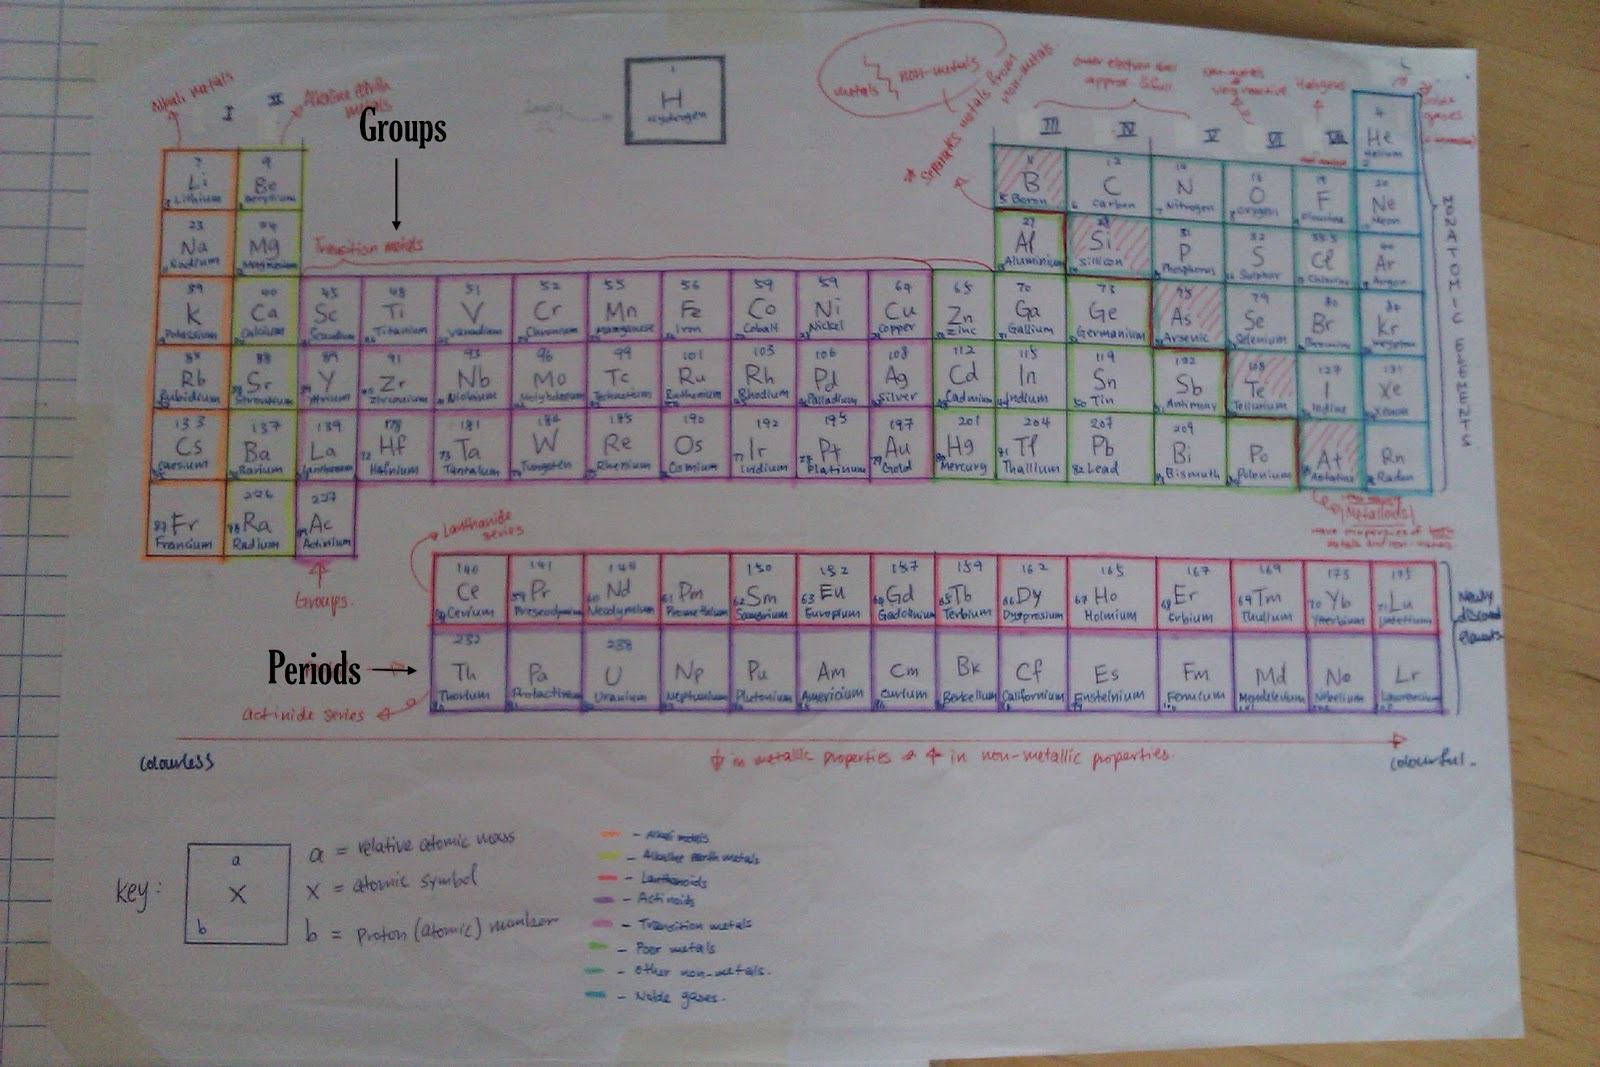 The horizontal rows of the periodic table are called choice image periodic table roman numerals image collections periodic table chemistry e journal sec 2 january 2013 the gamestrikefo Choice Image